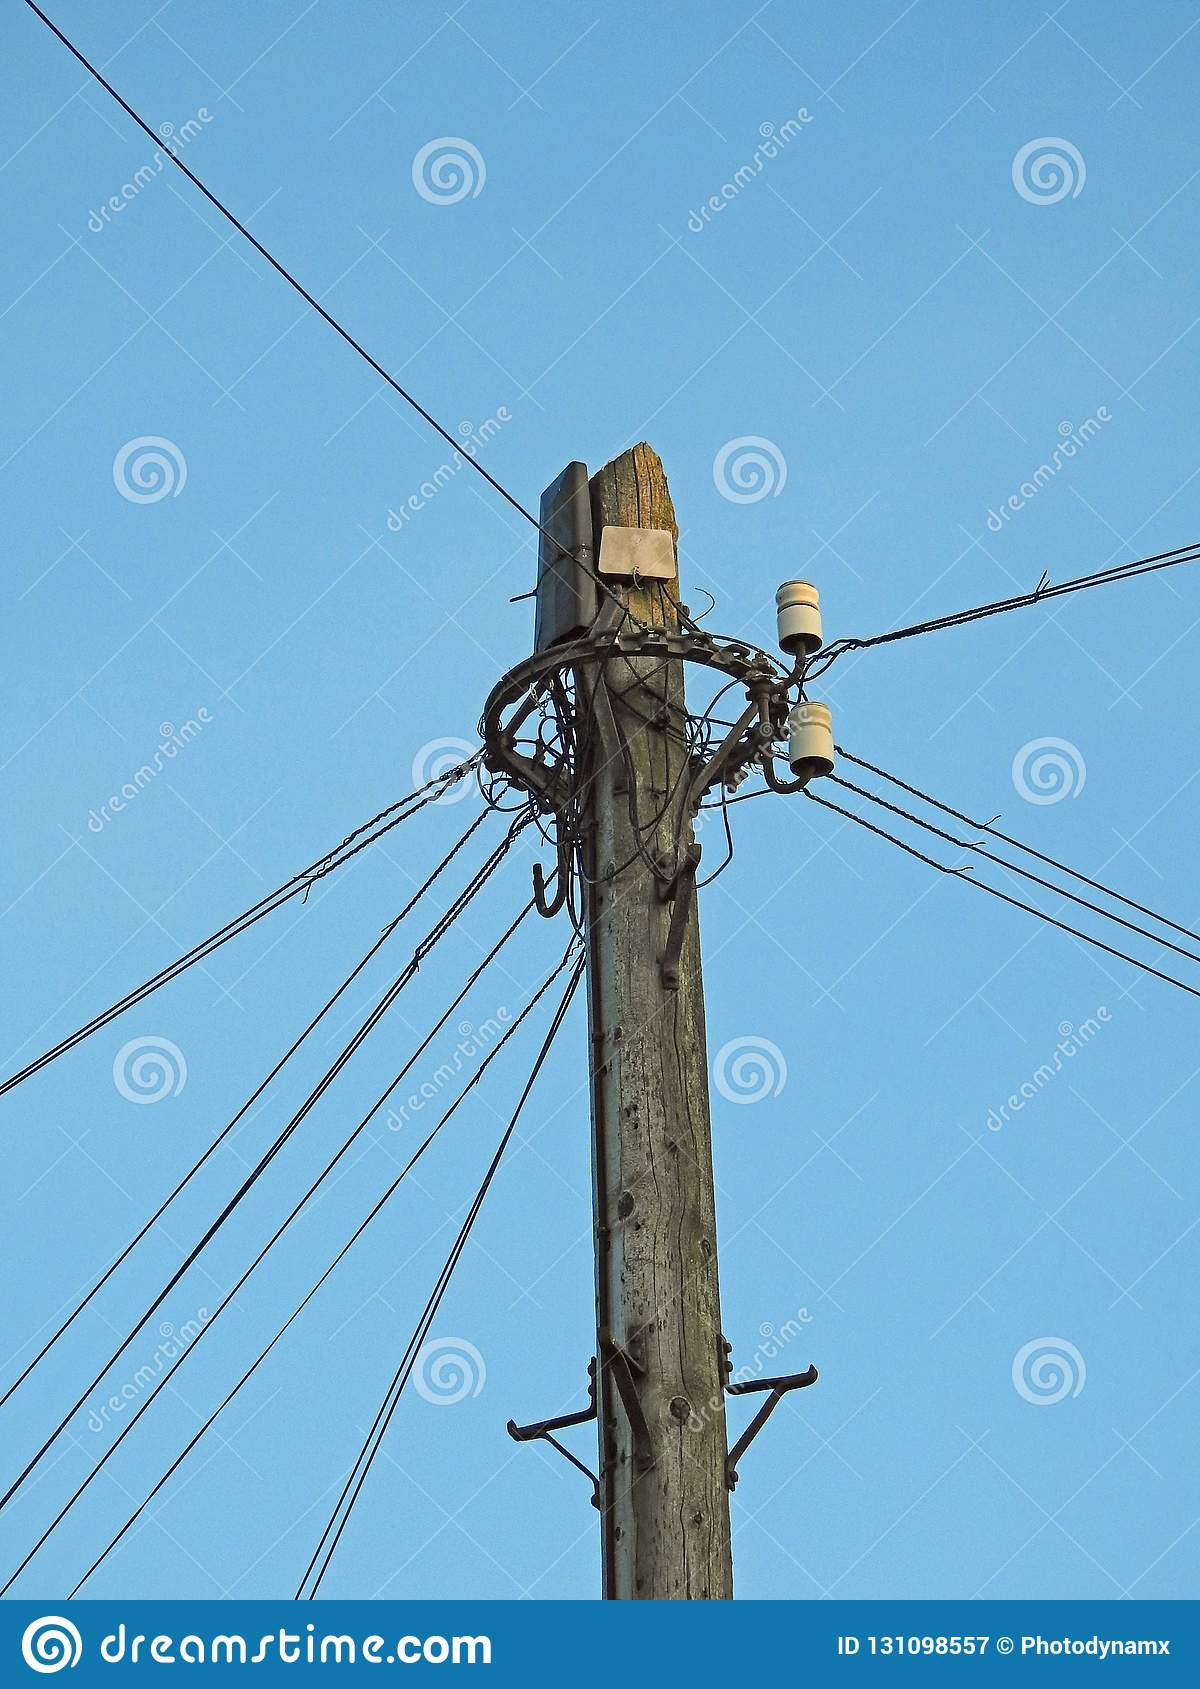 Telegraph Communications Pole Wiring Junction Stock Image ... on